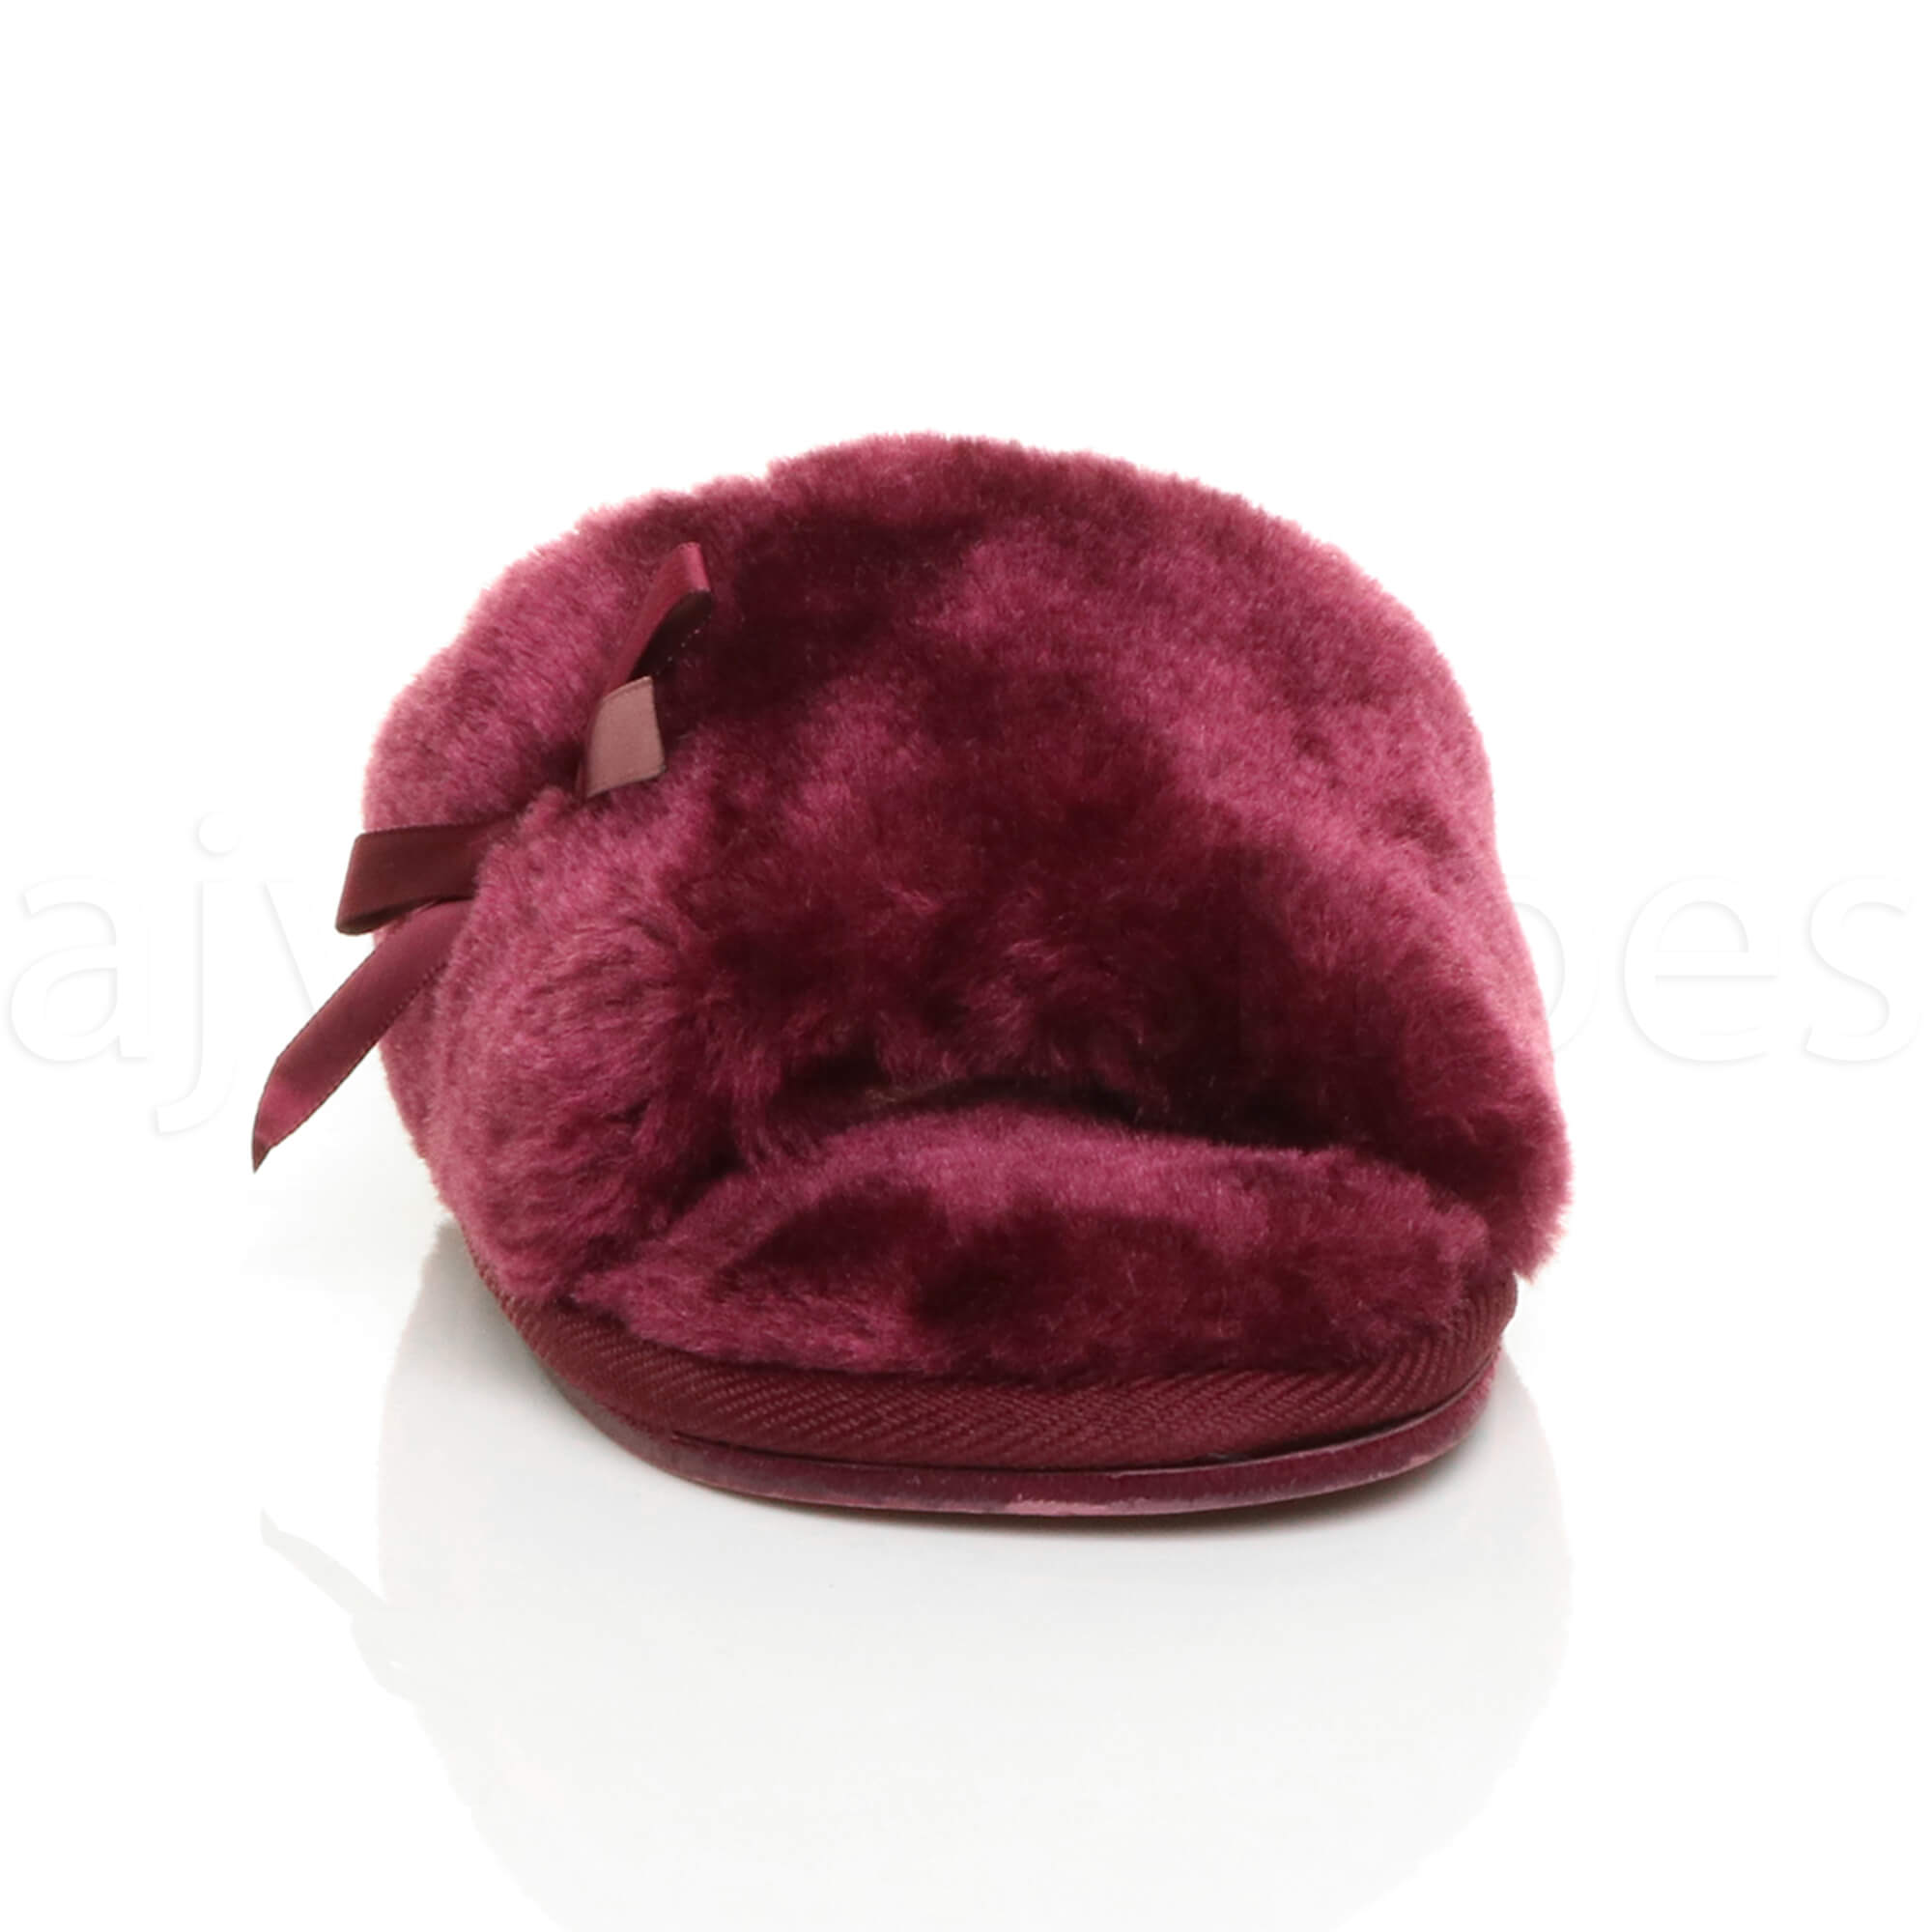 WOMENS-LADIES-FLAT-PEEP-TOE-BOW-LUXURY-COSY-FUR-LINED-SLIP-ON-SLIPPERS-SIZE thumbnail 23